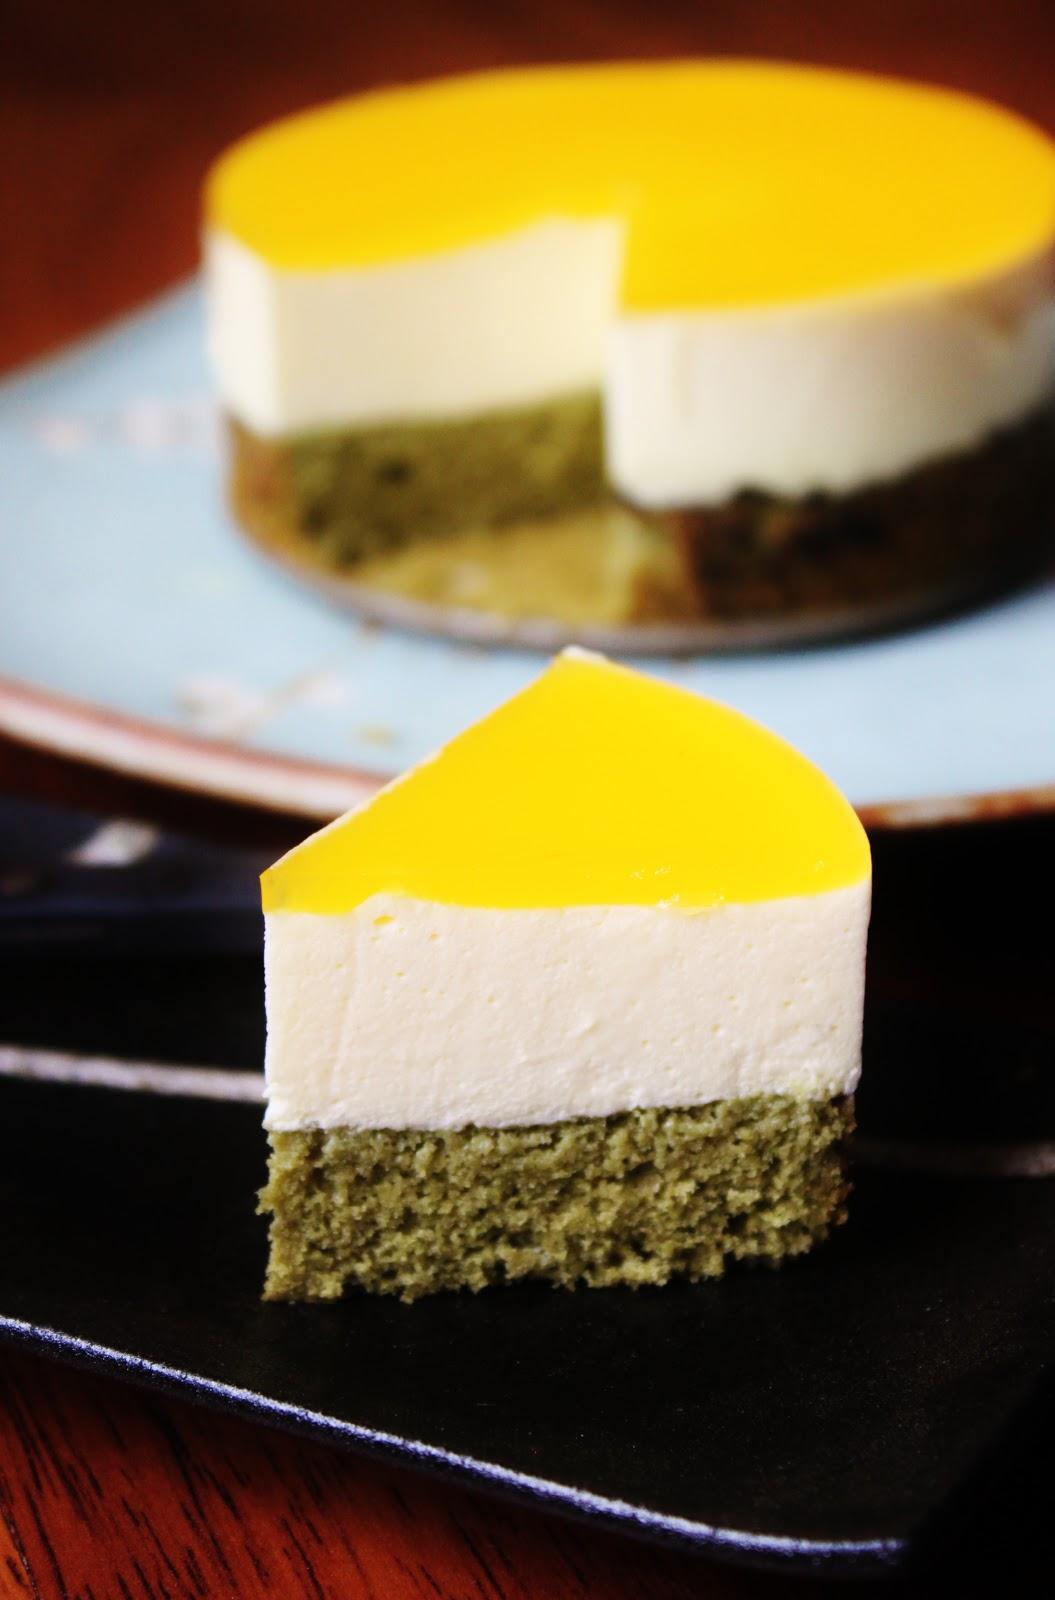 dominique ansel bakery - MATCHA PASSION FRUIT MOUSSE CAKE